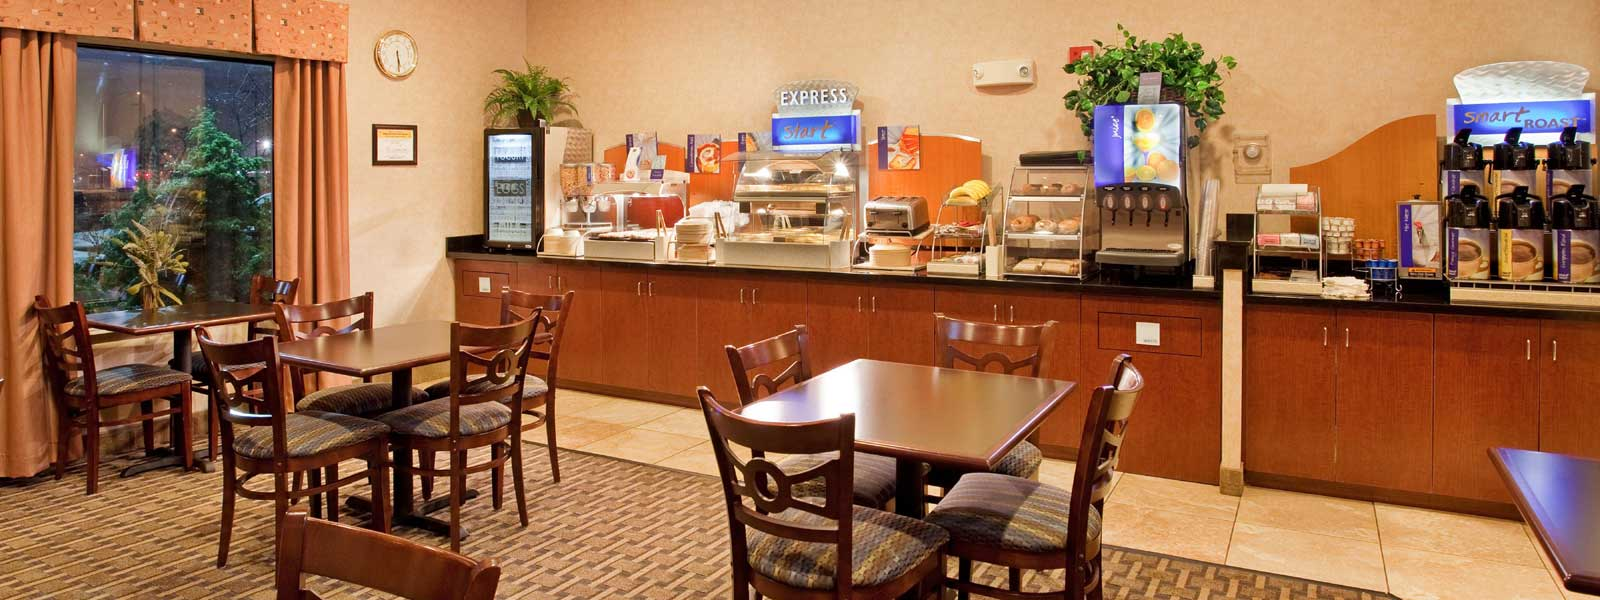 Hotels in Kansas City Great Rates Trip Advisor